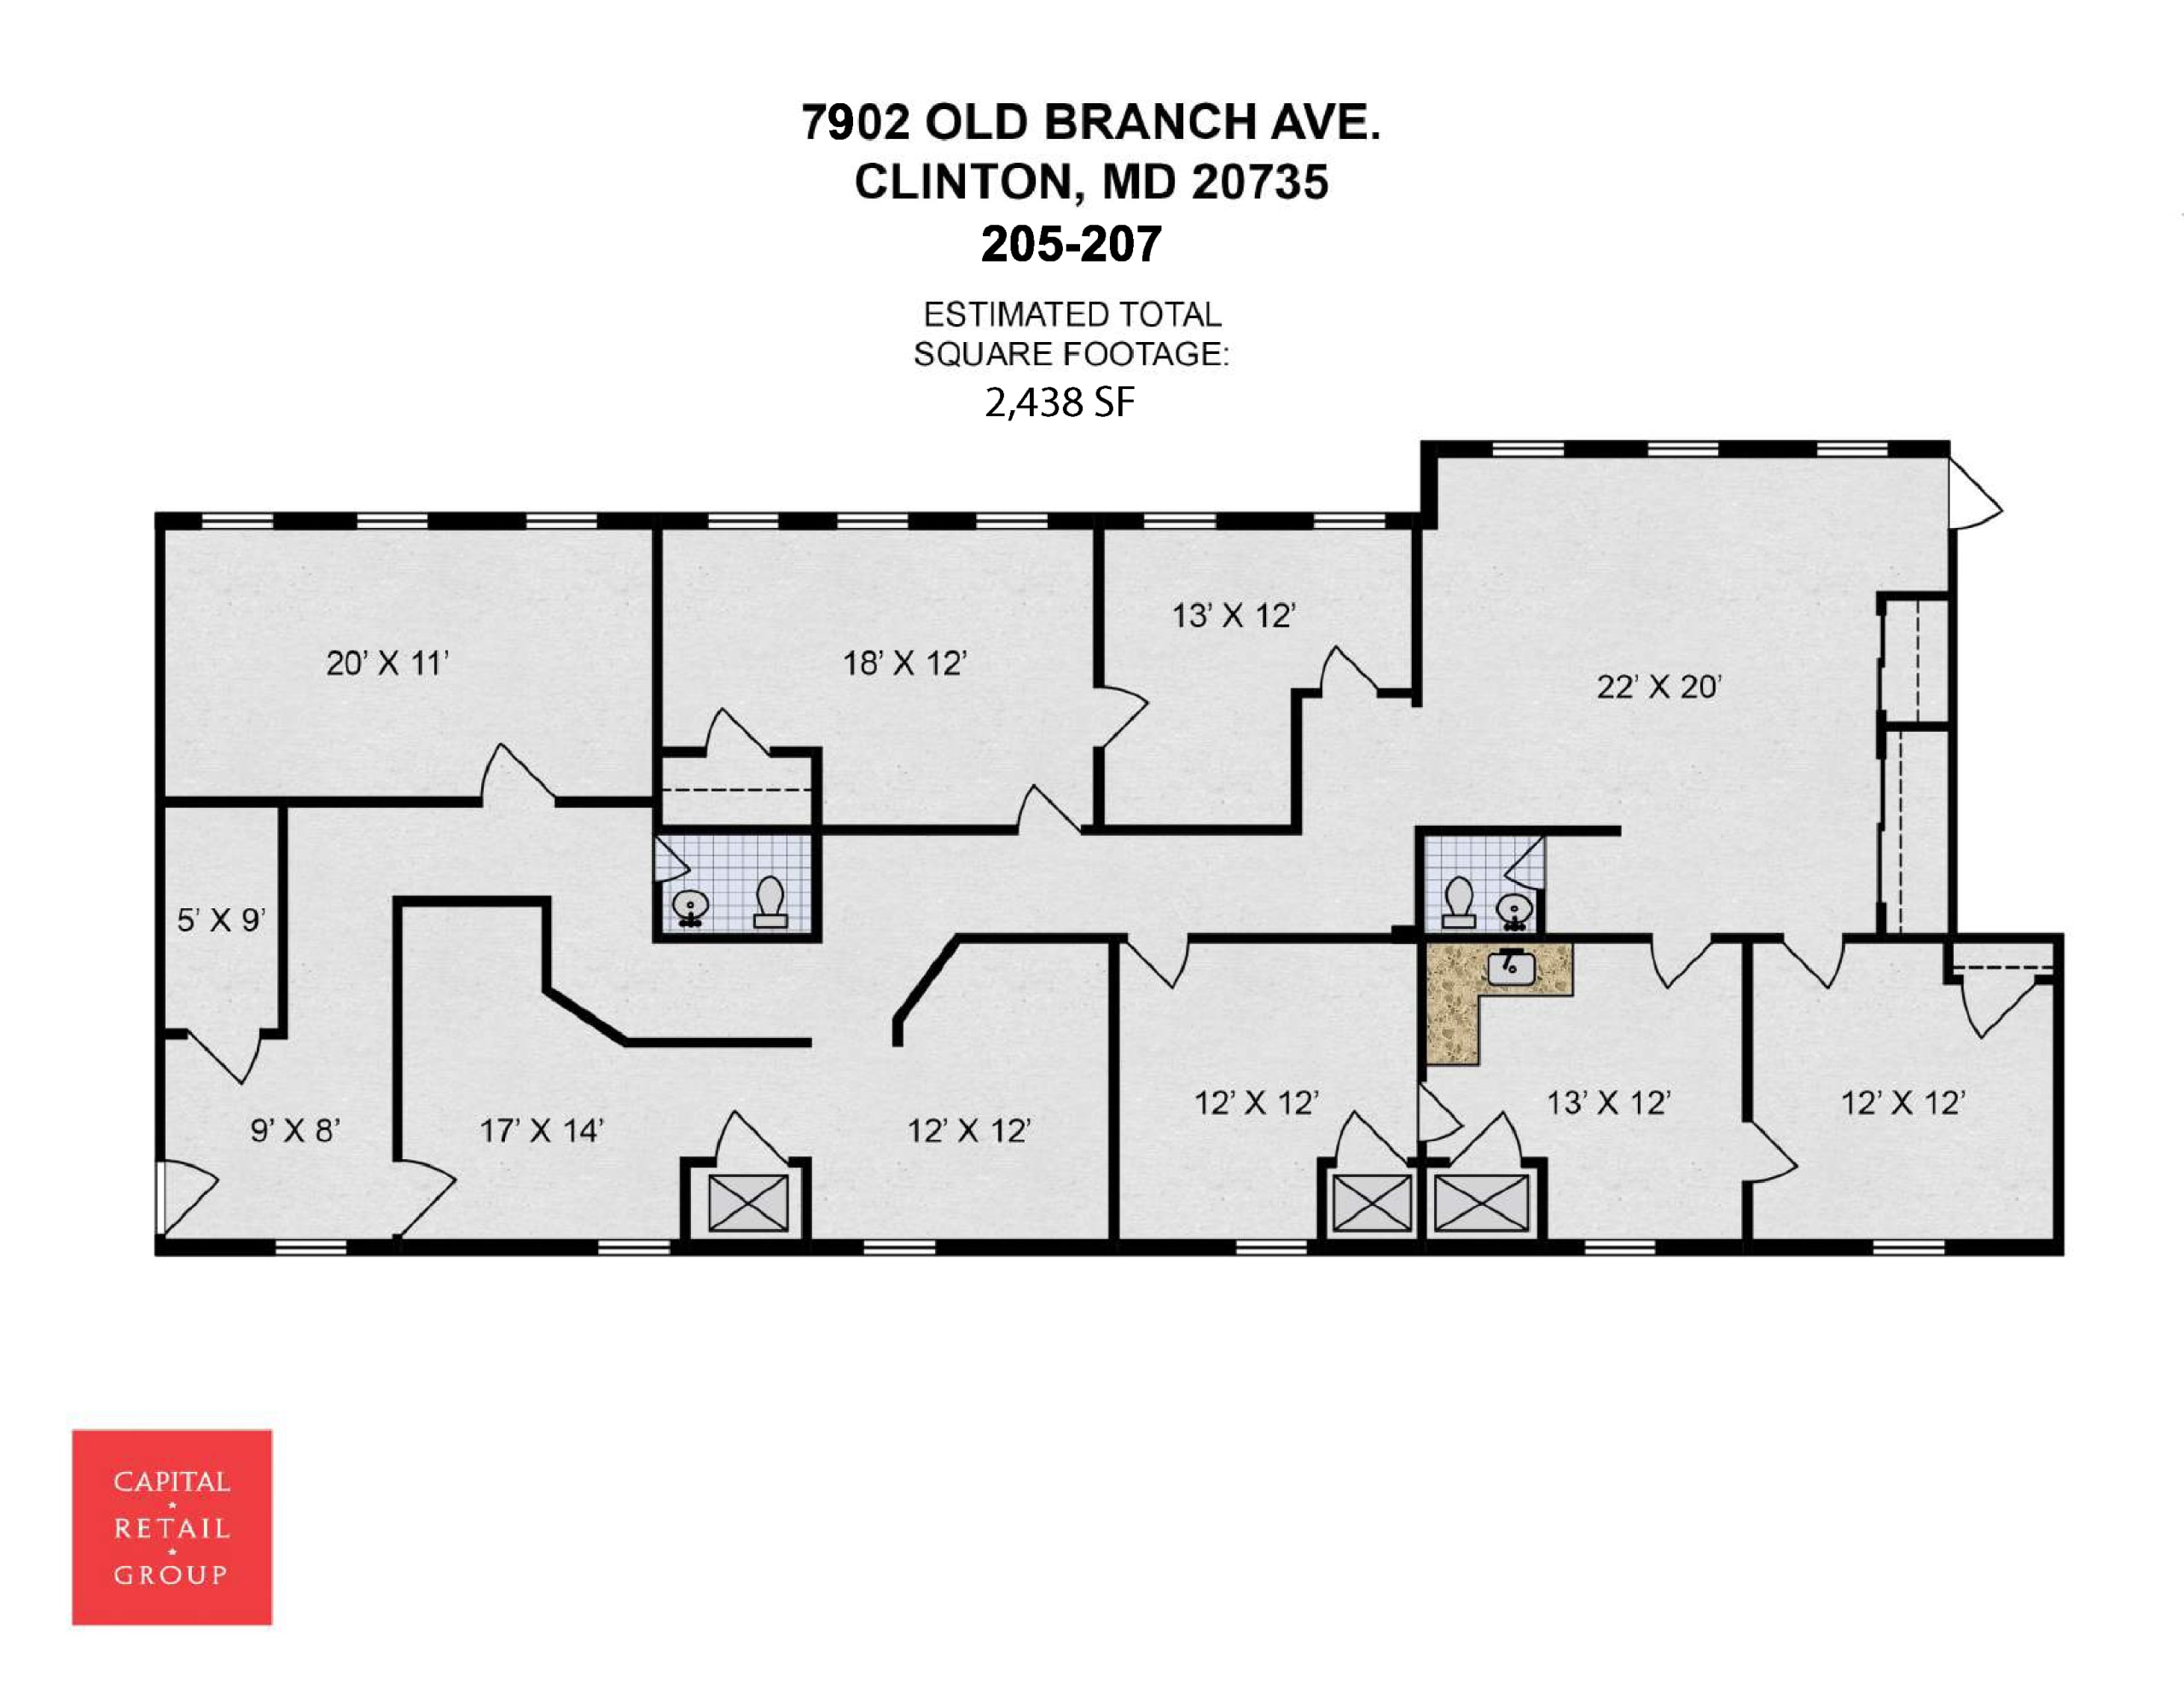 7902 Old Branch Ave #205-207